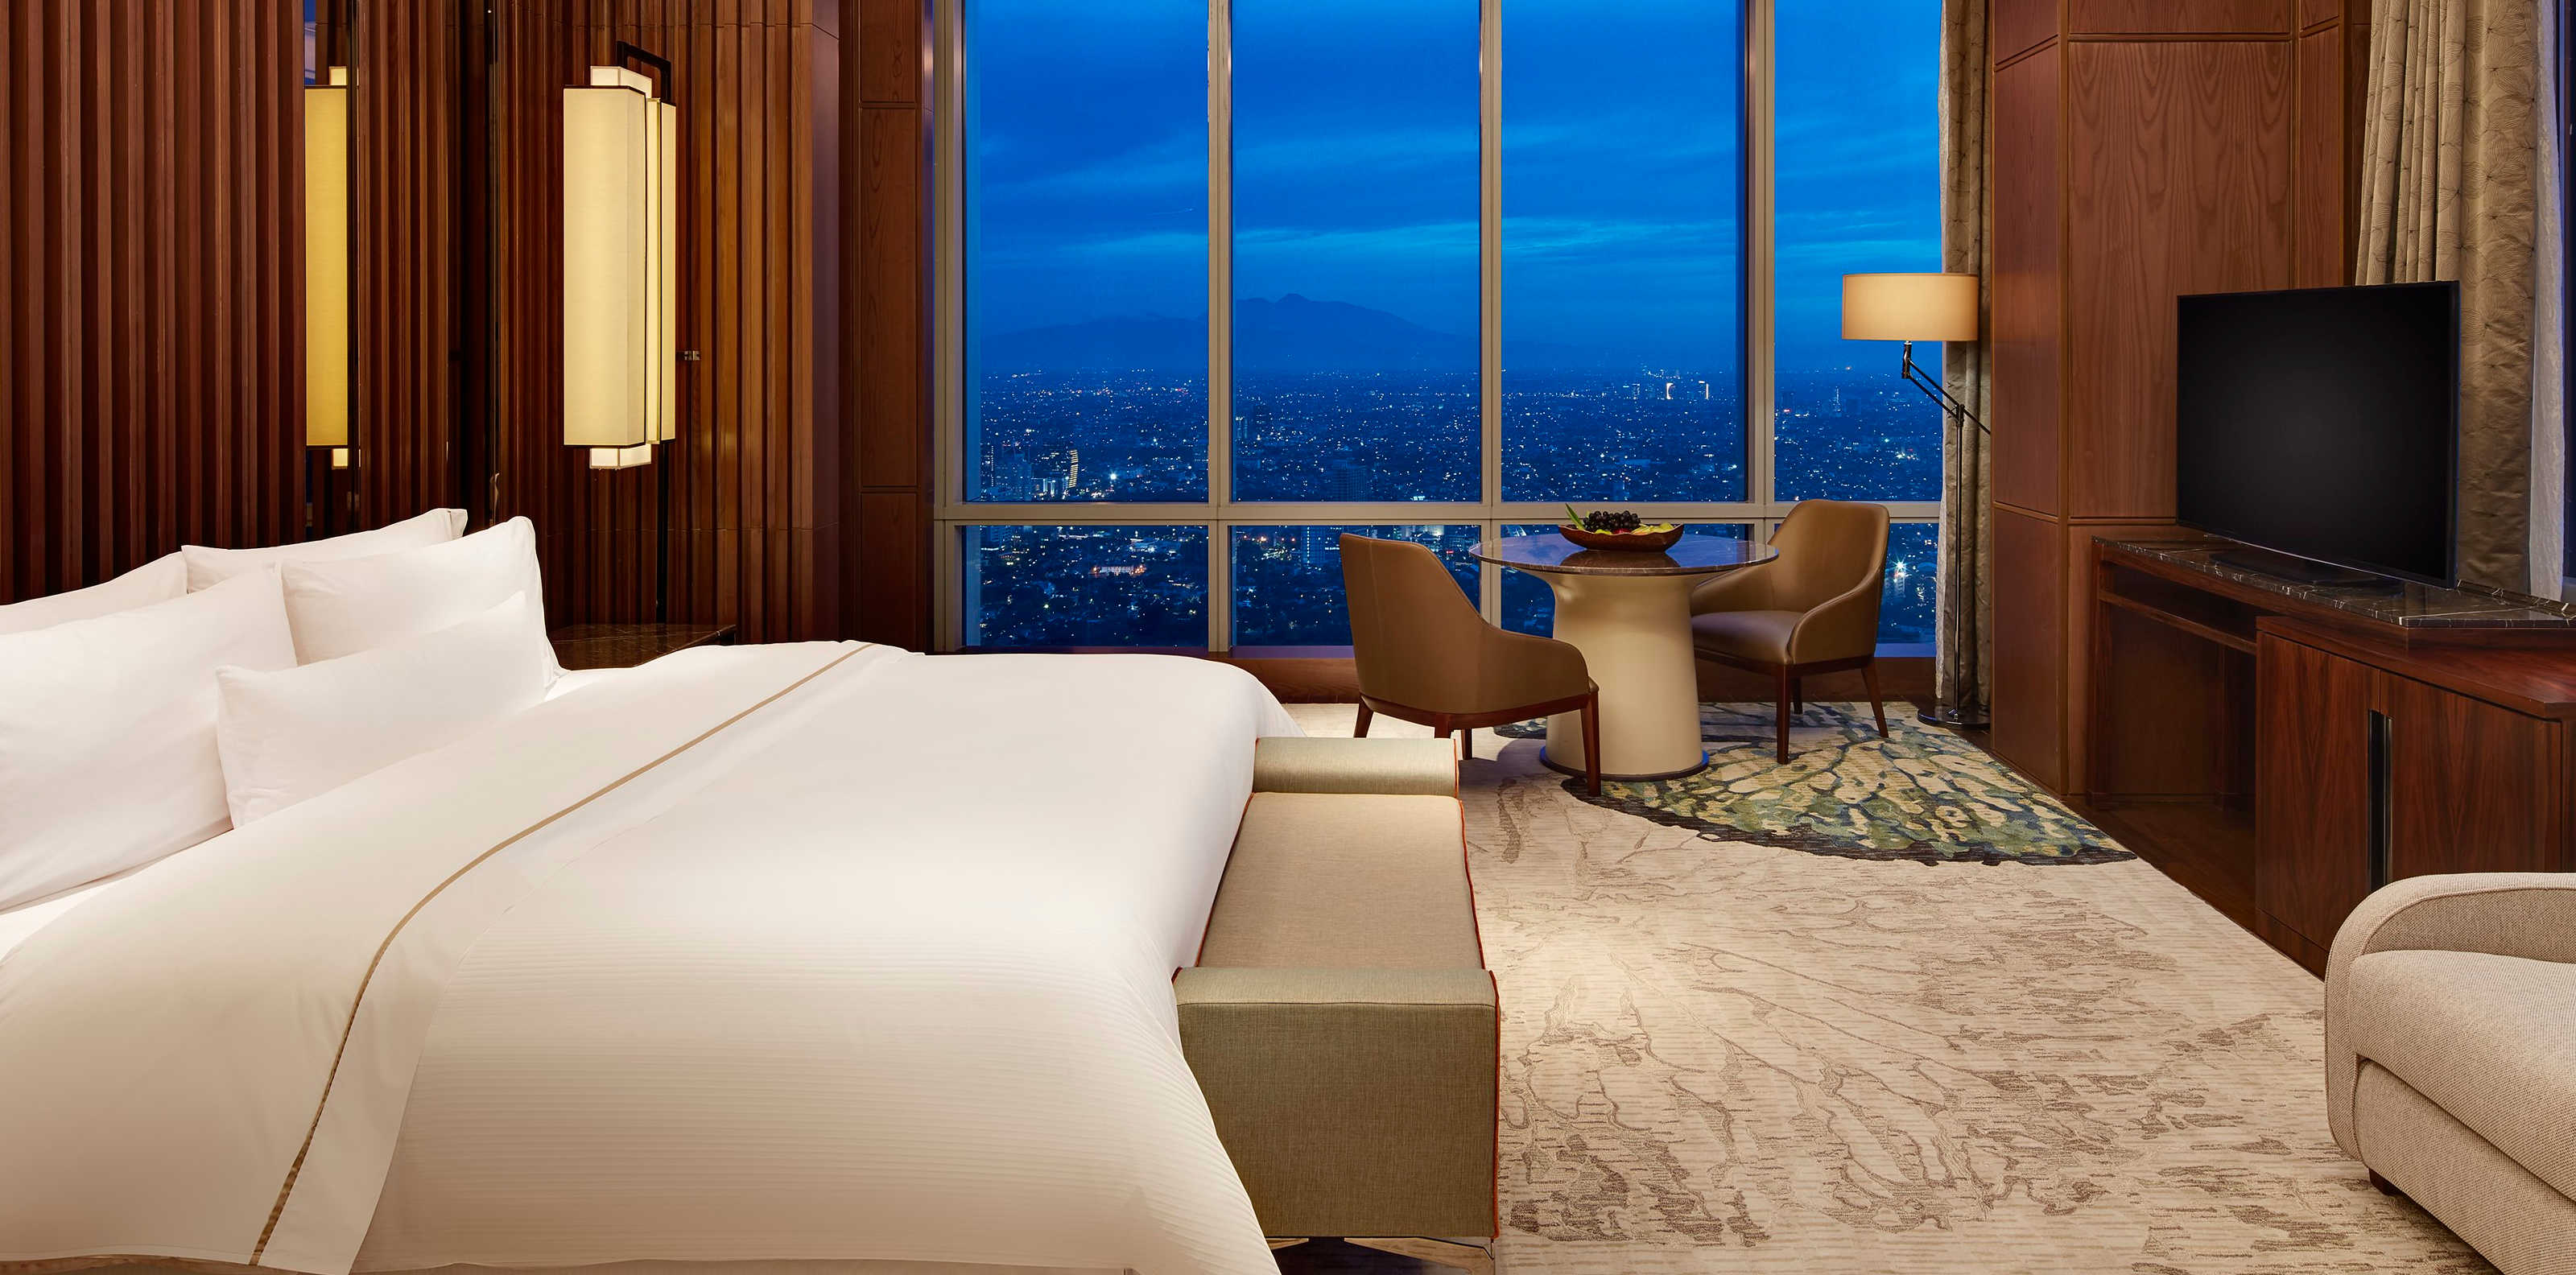 Bonvoy Titanium members can get complimentary upgrades to suites like this one at the Westin Jakarta